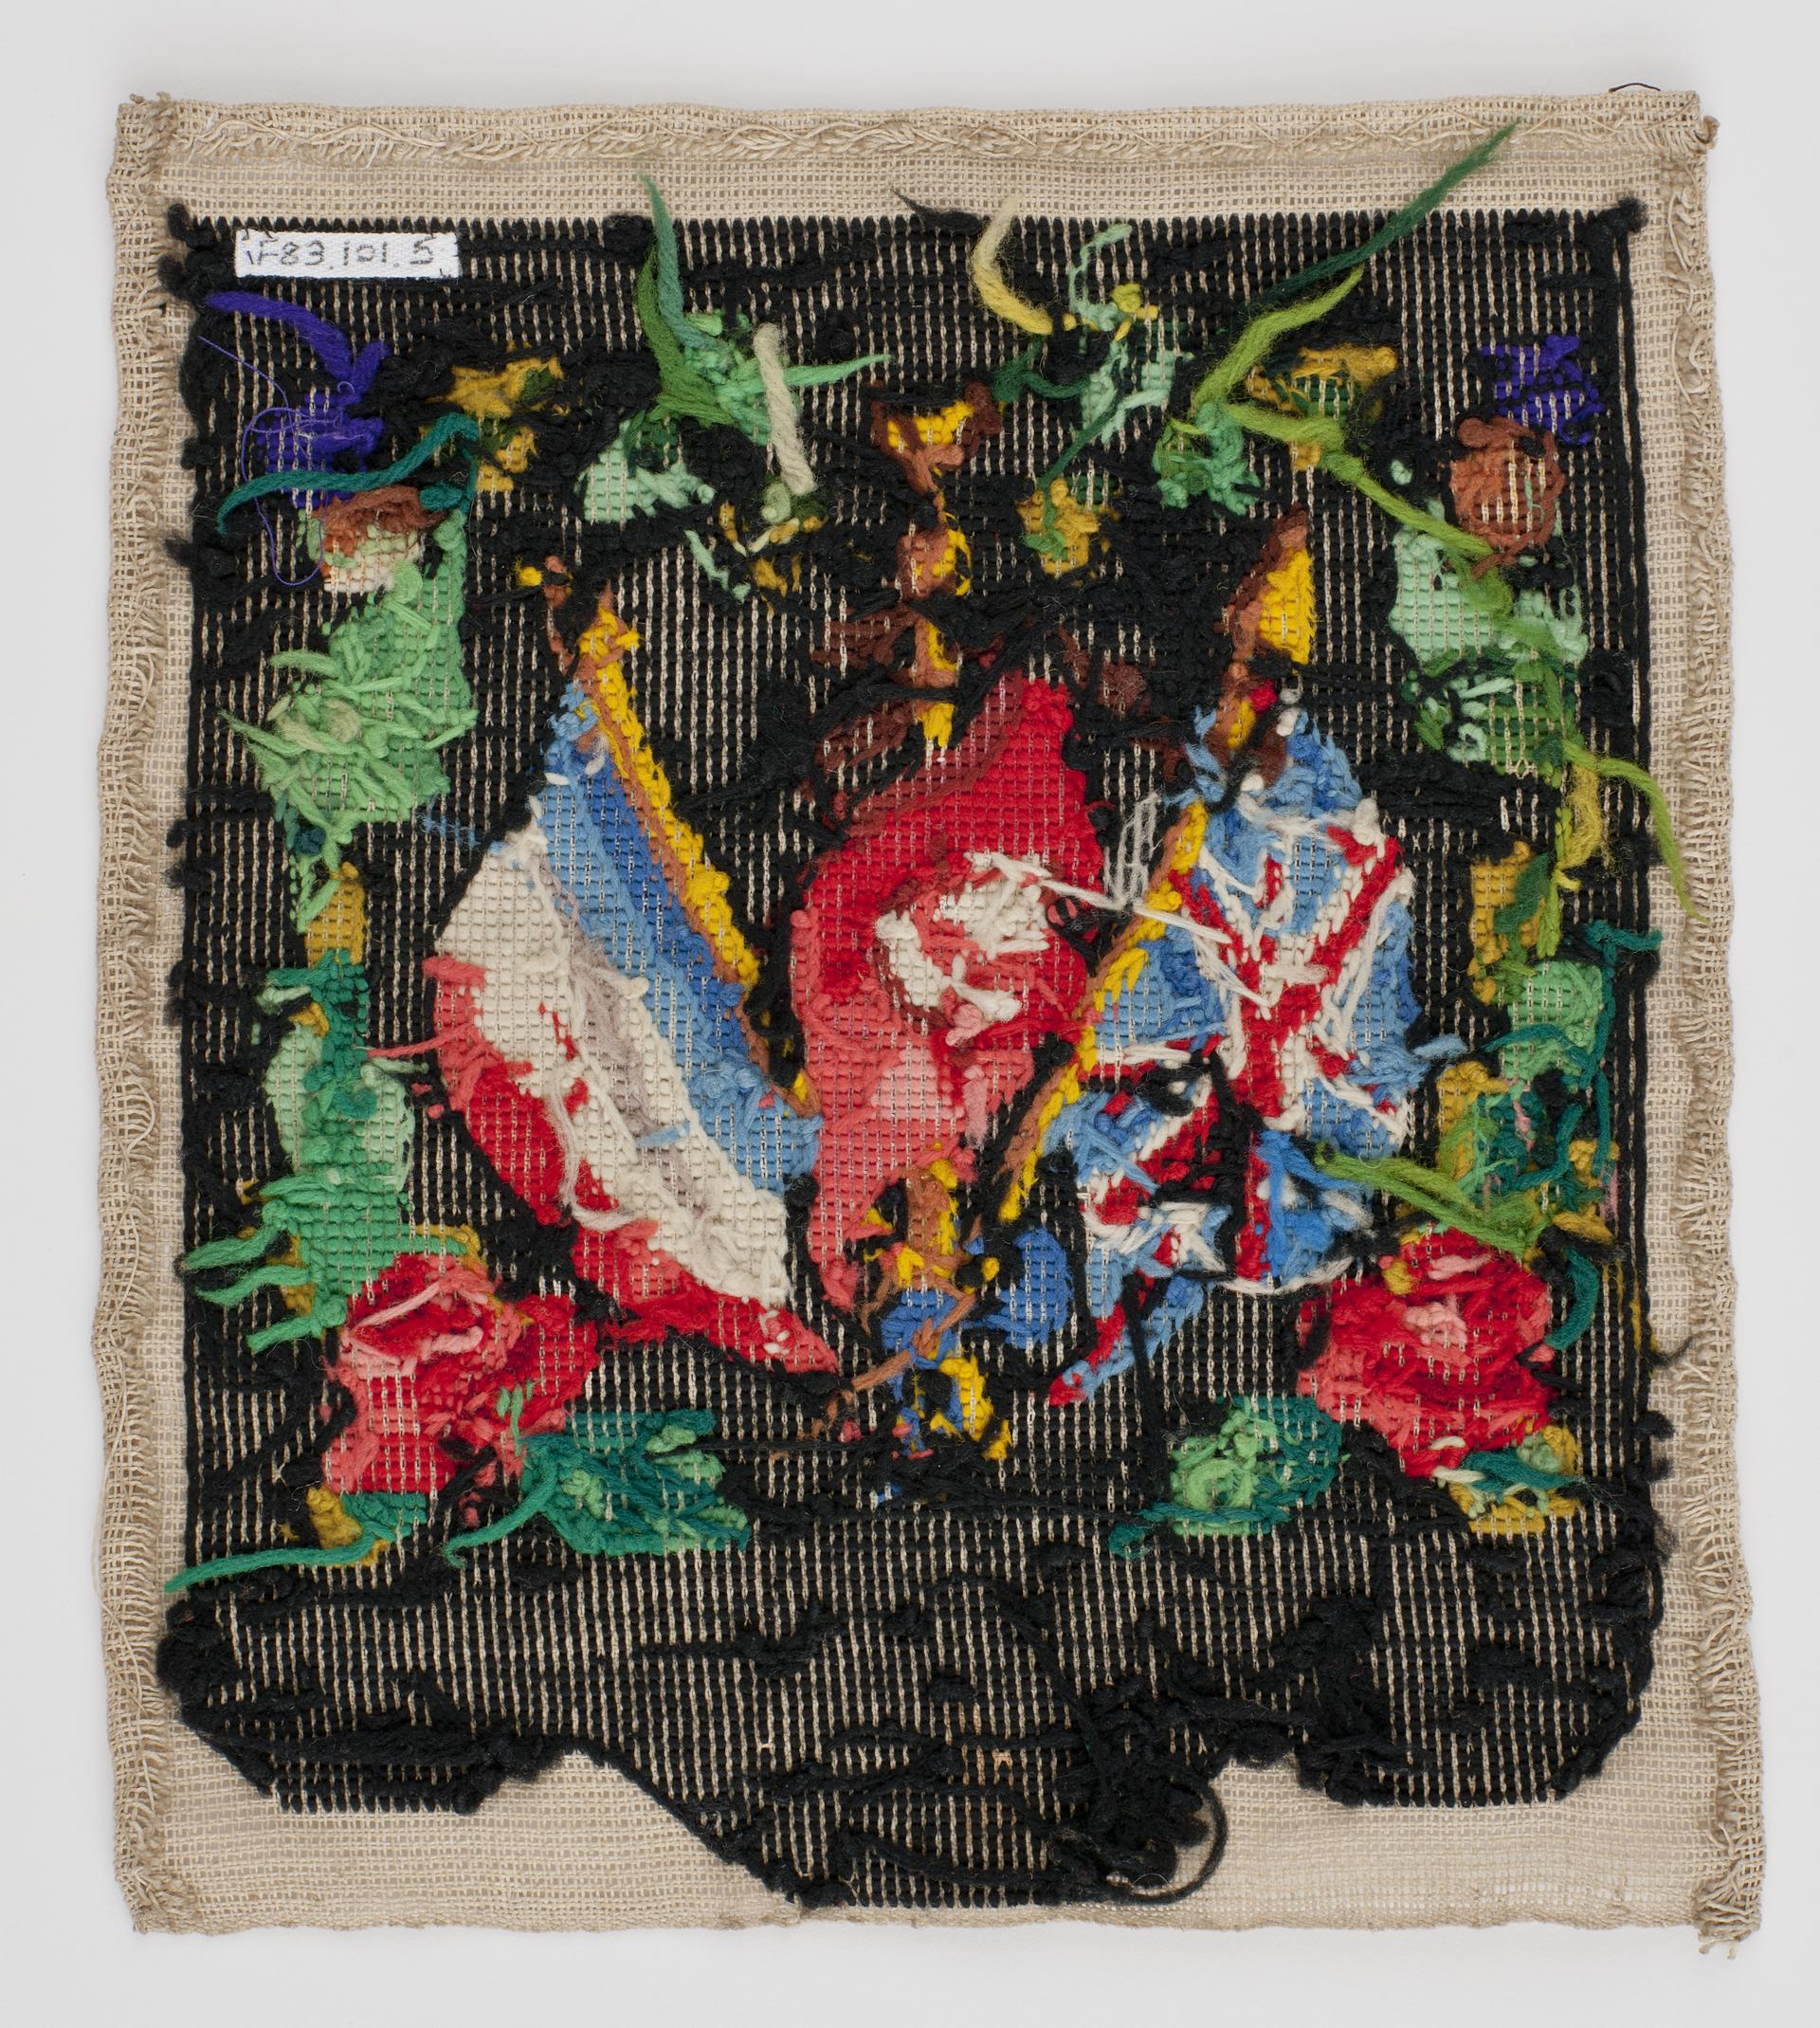 Open the image &lsquoWoolwork picture embroidered with British, French & Turkish flags'